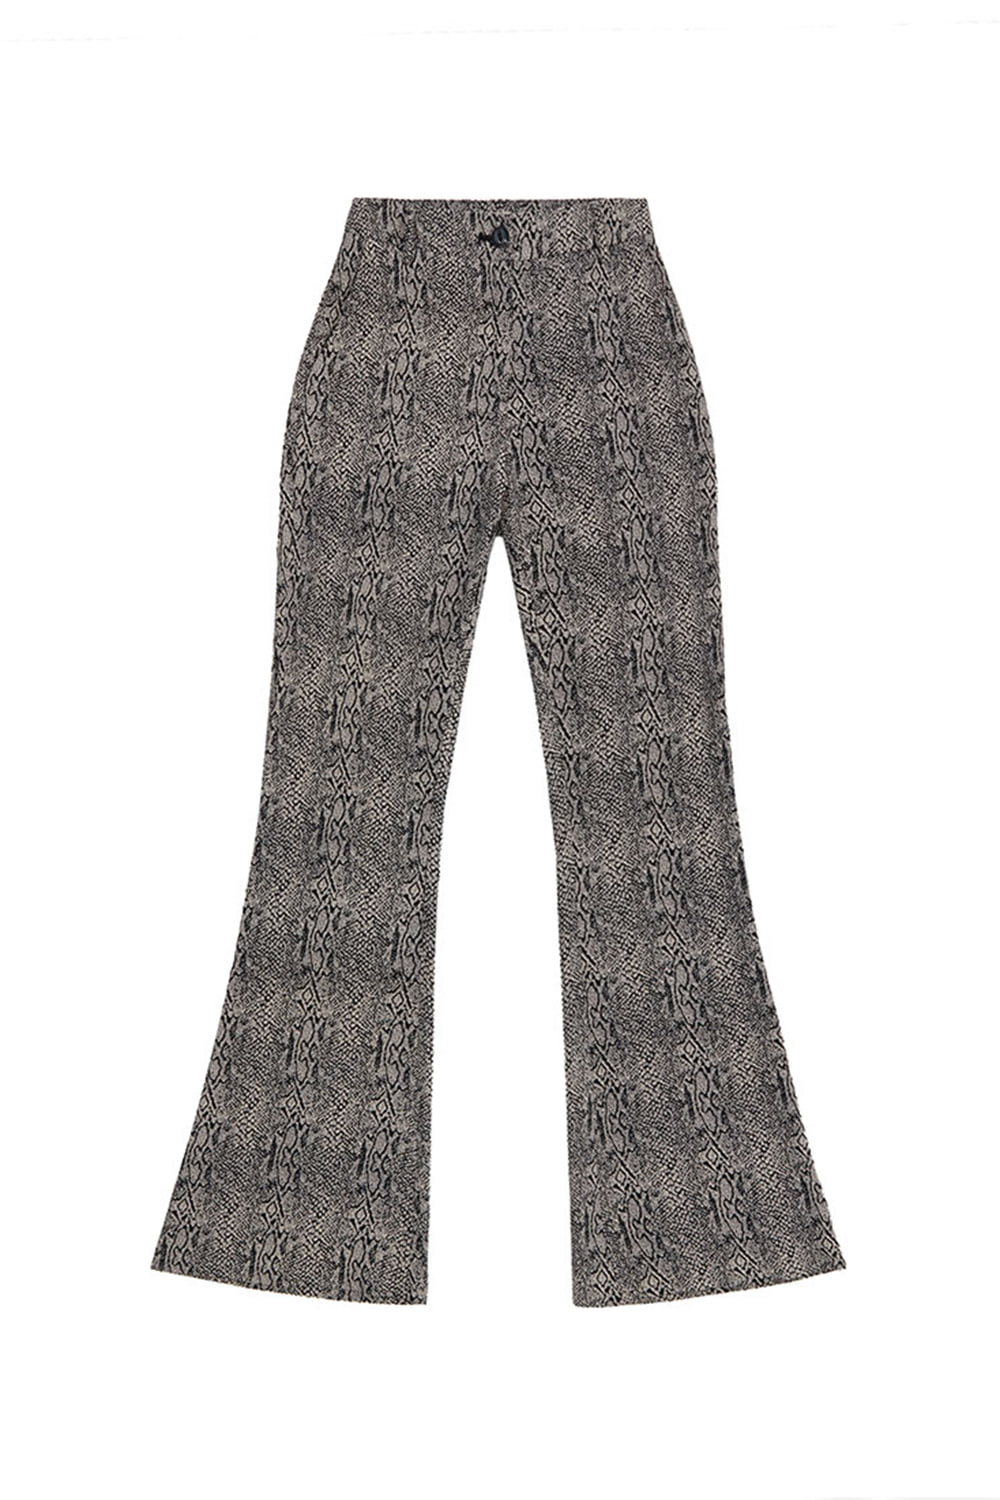 PATTERN SLACKS_black/white python